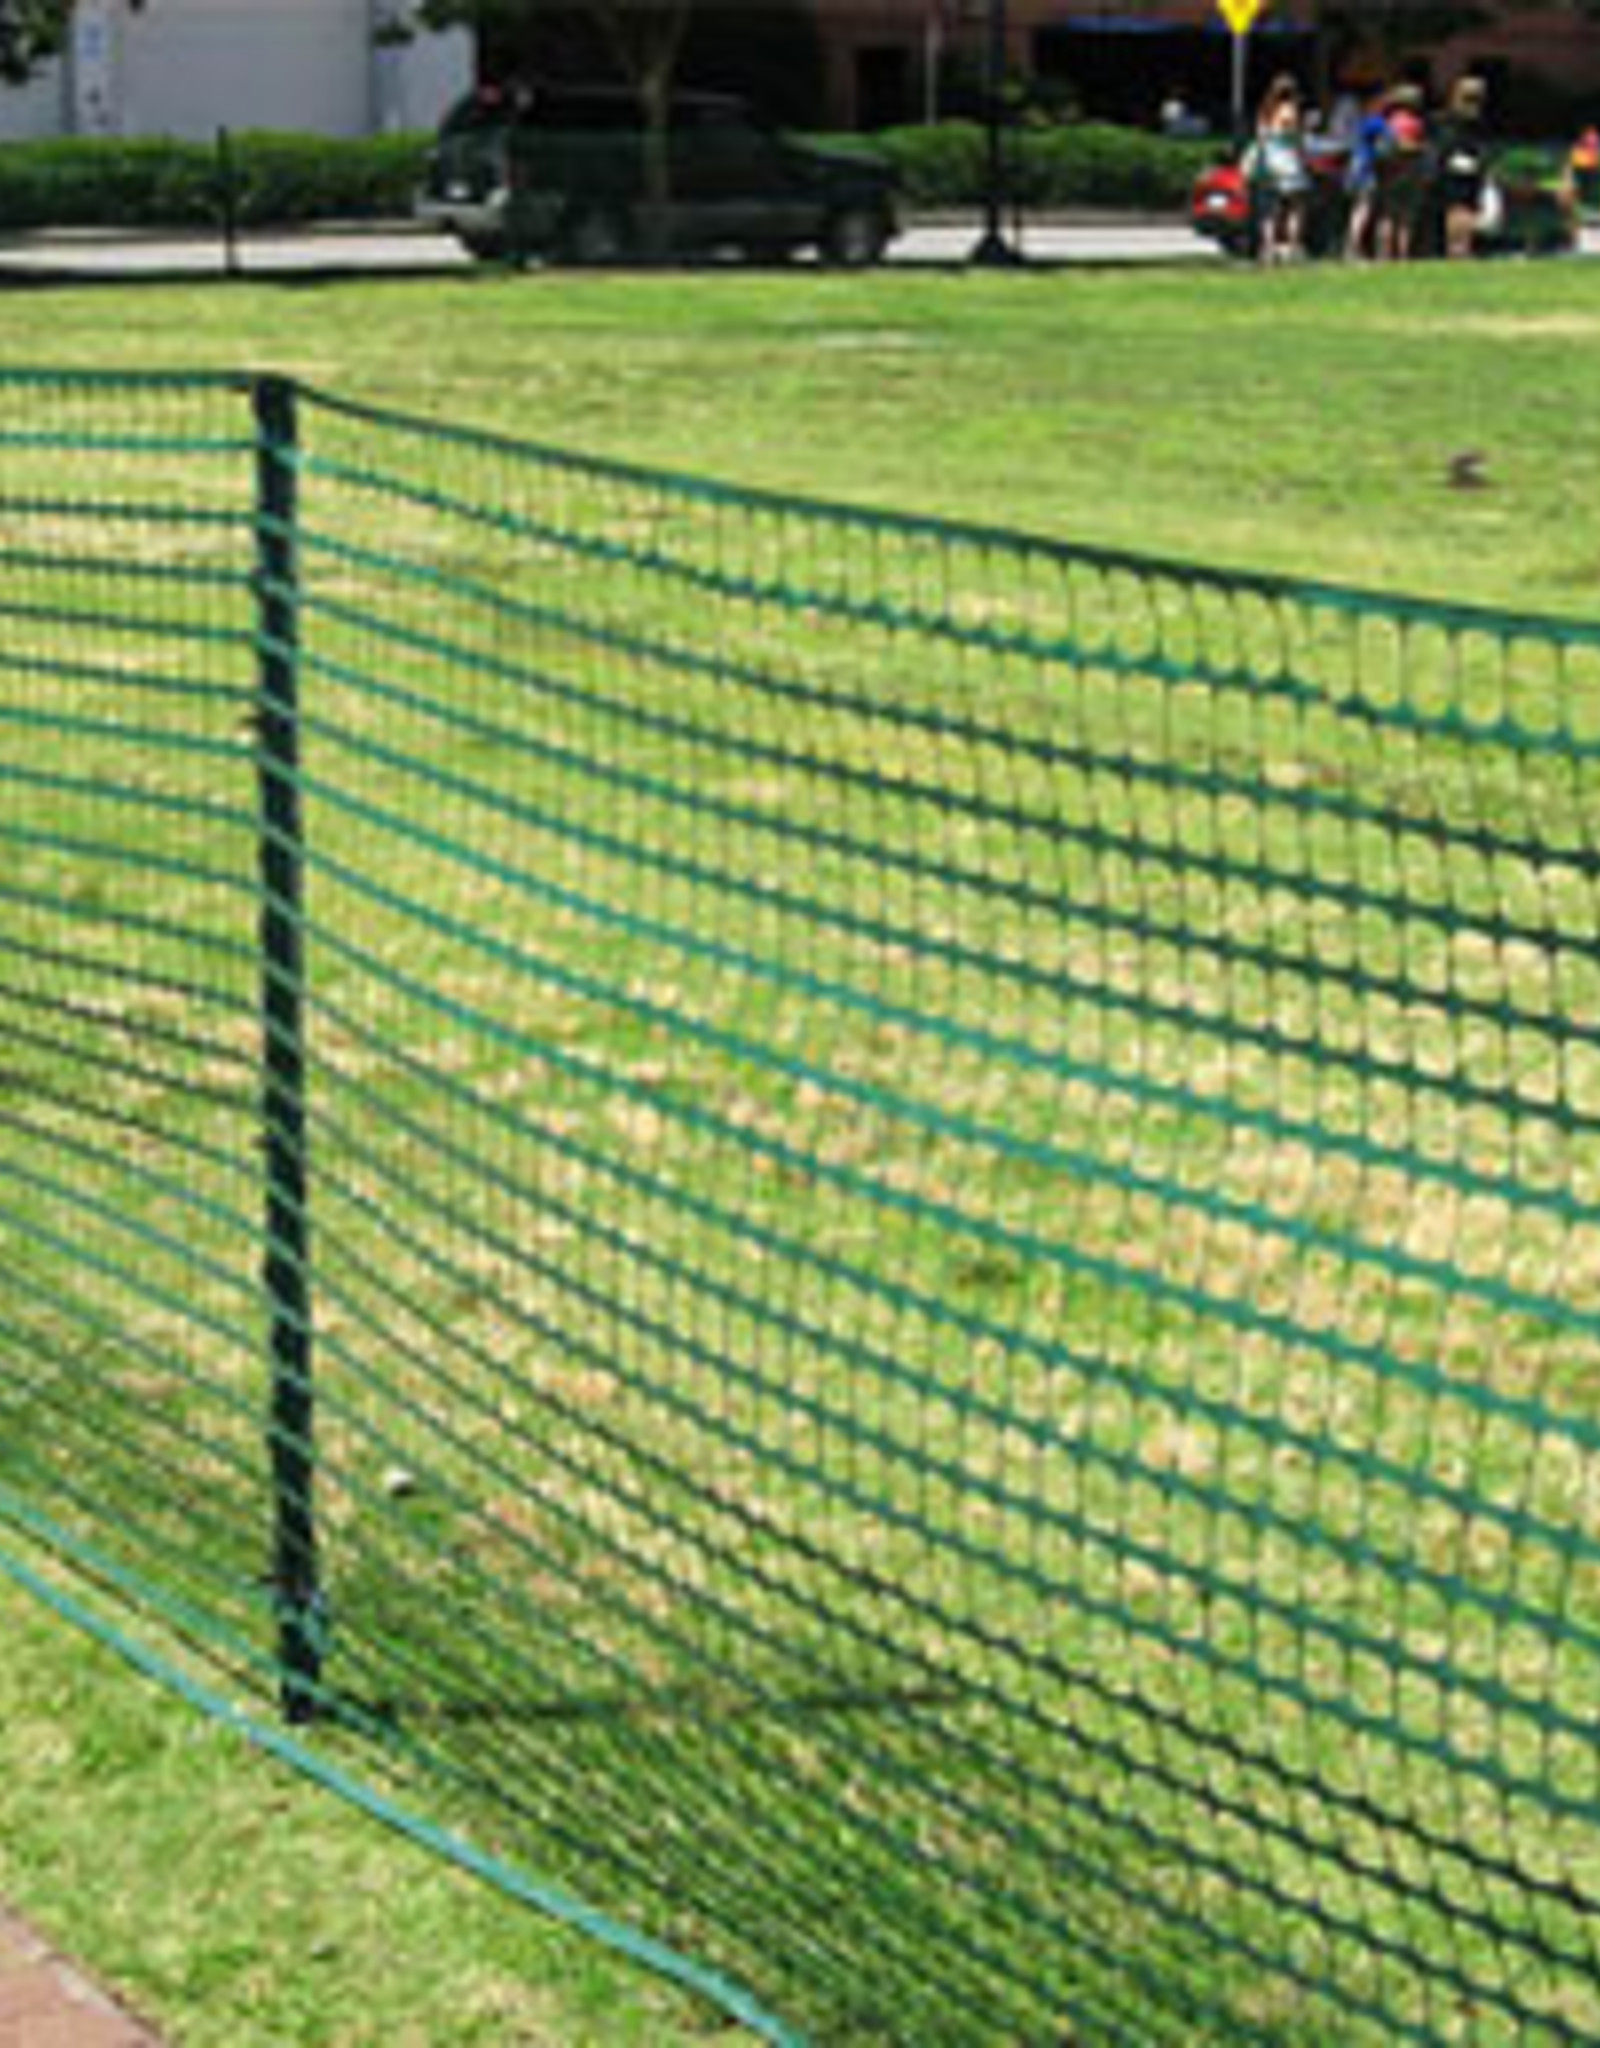 Safety Fence, 8 lb. Light Weight, Green or Orange, SZ. 4' x100'